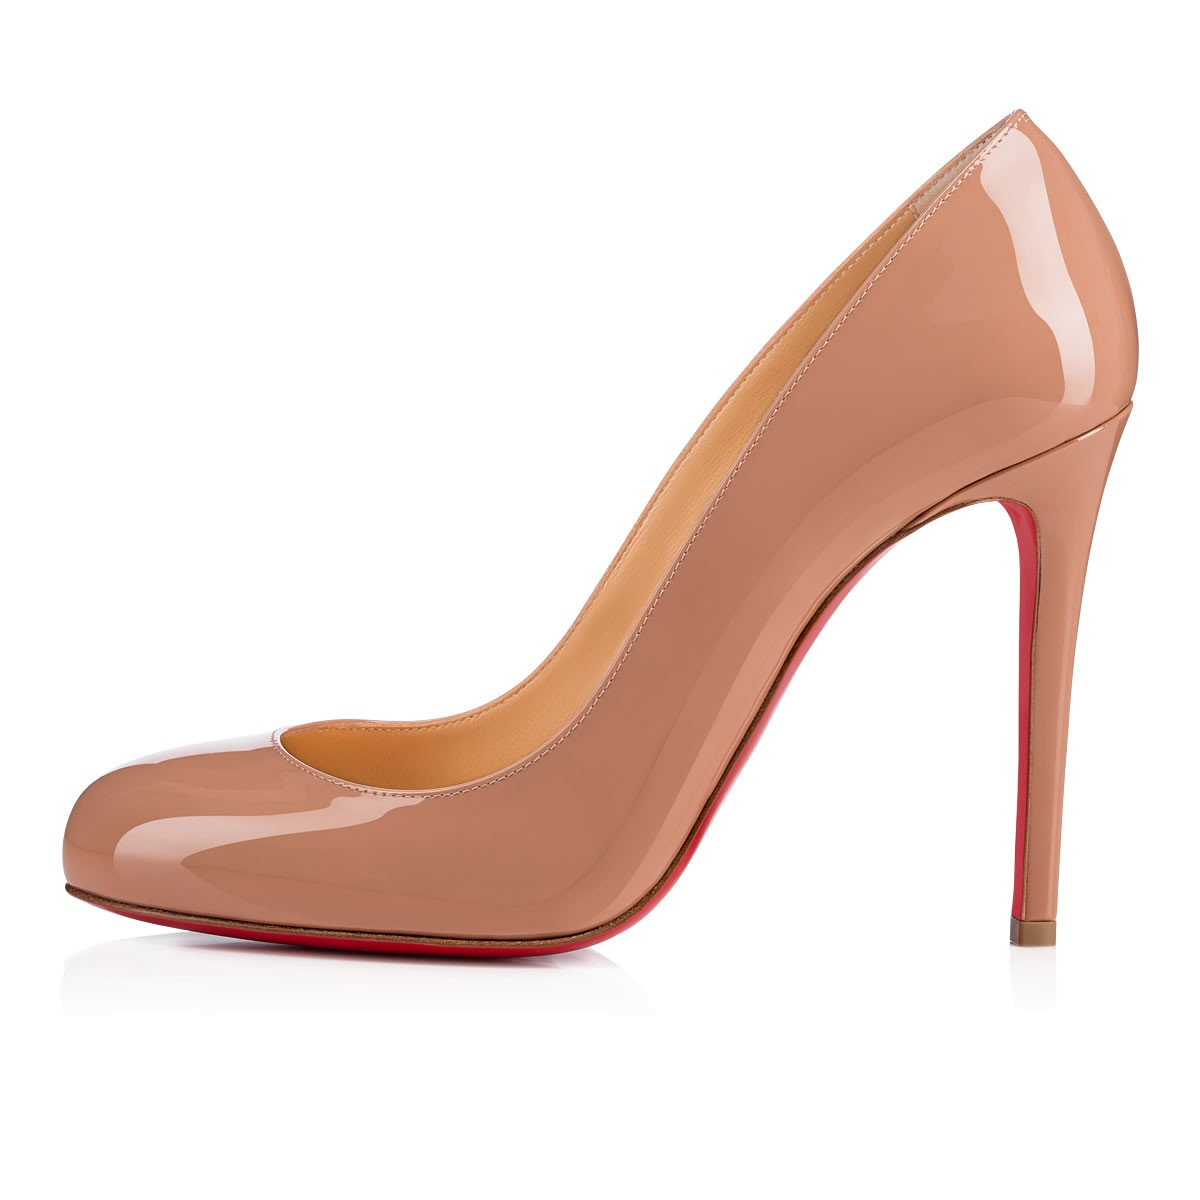 mieux aimé 1a4a7 f98d3 Fifille 100 Nude Patent Leather - Women Shoes - Christian Louboutin